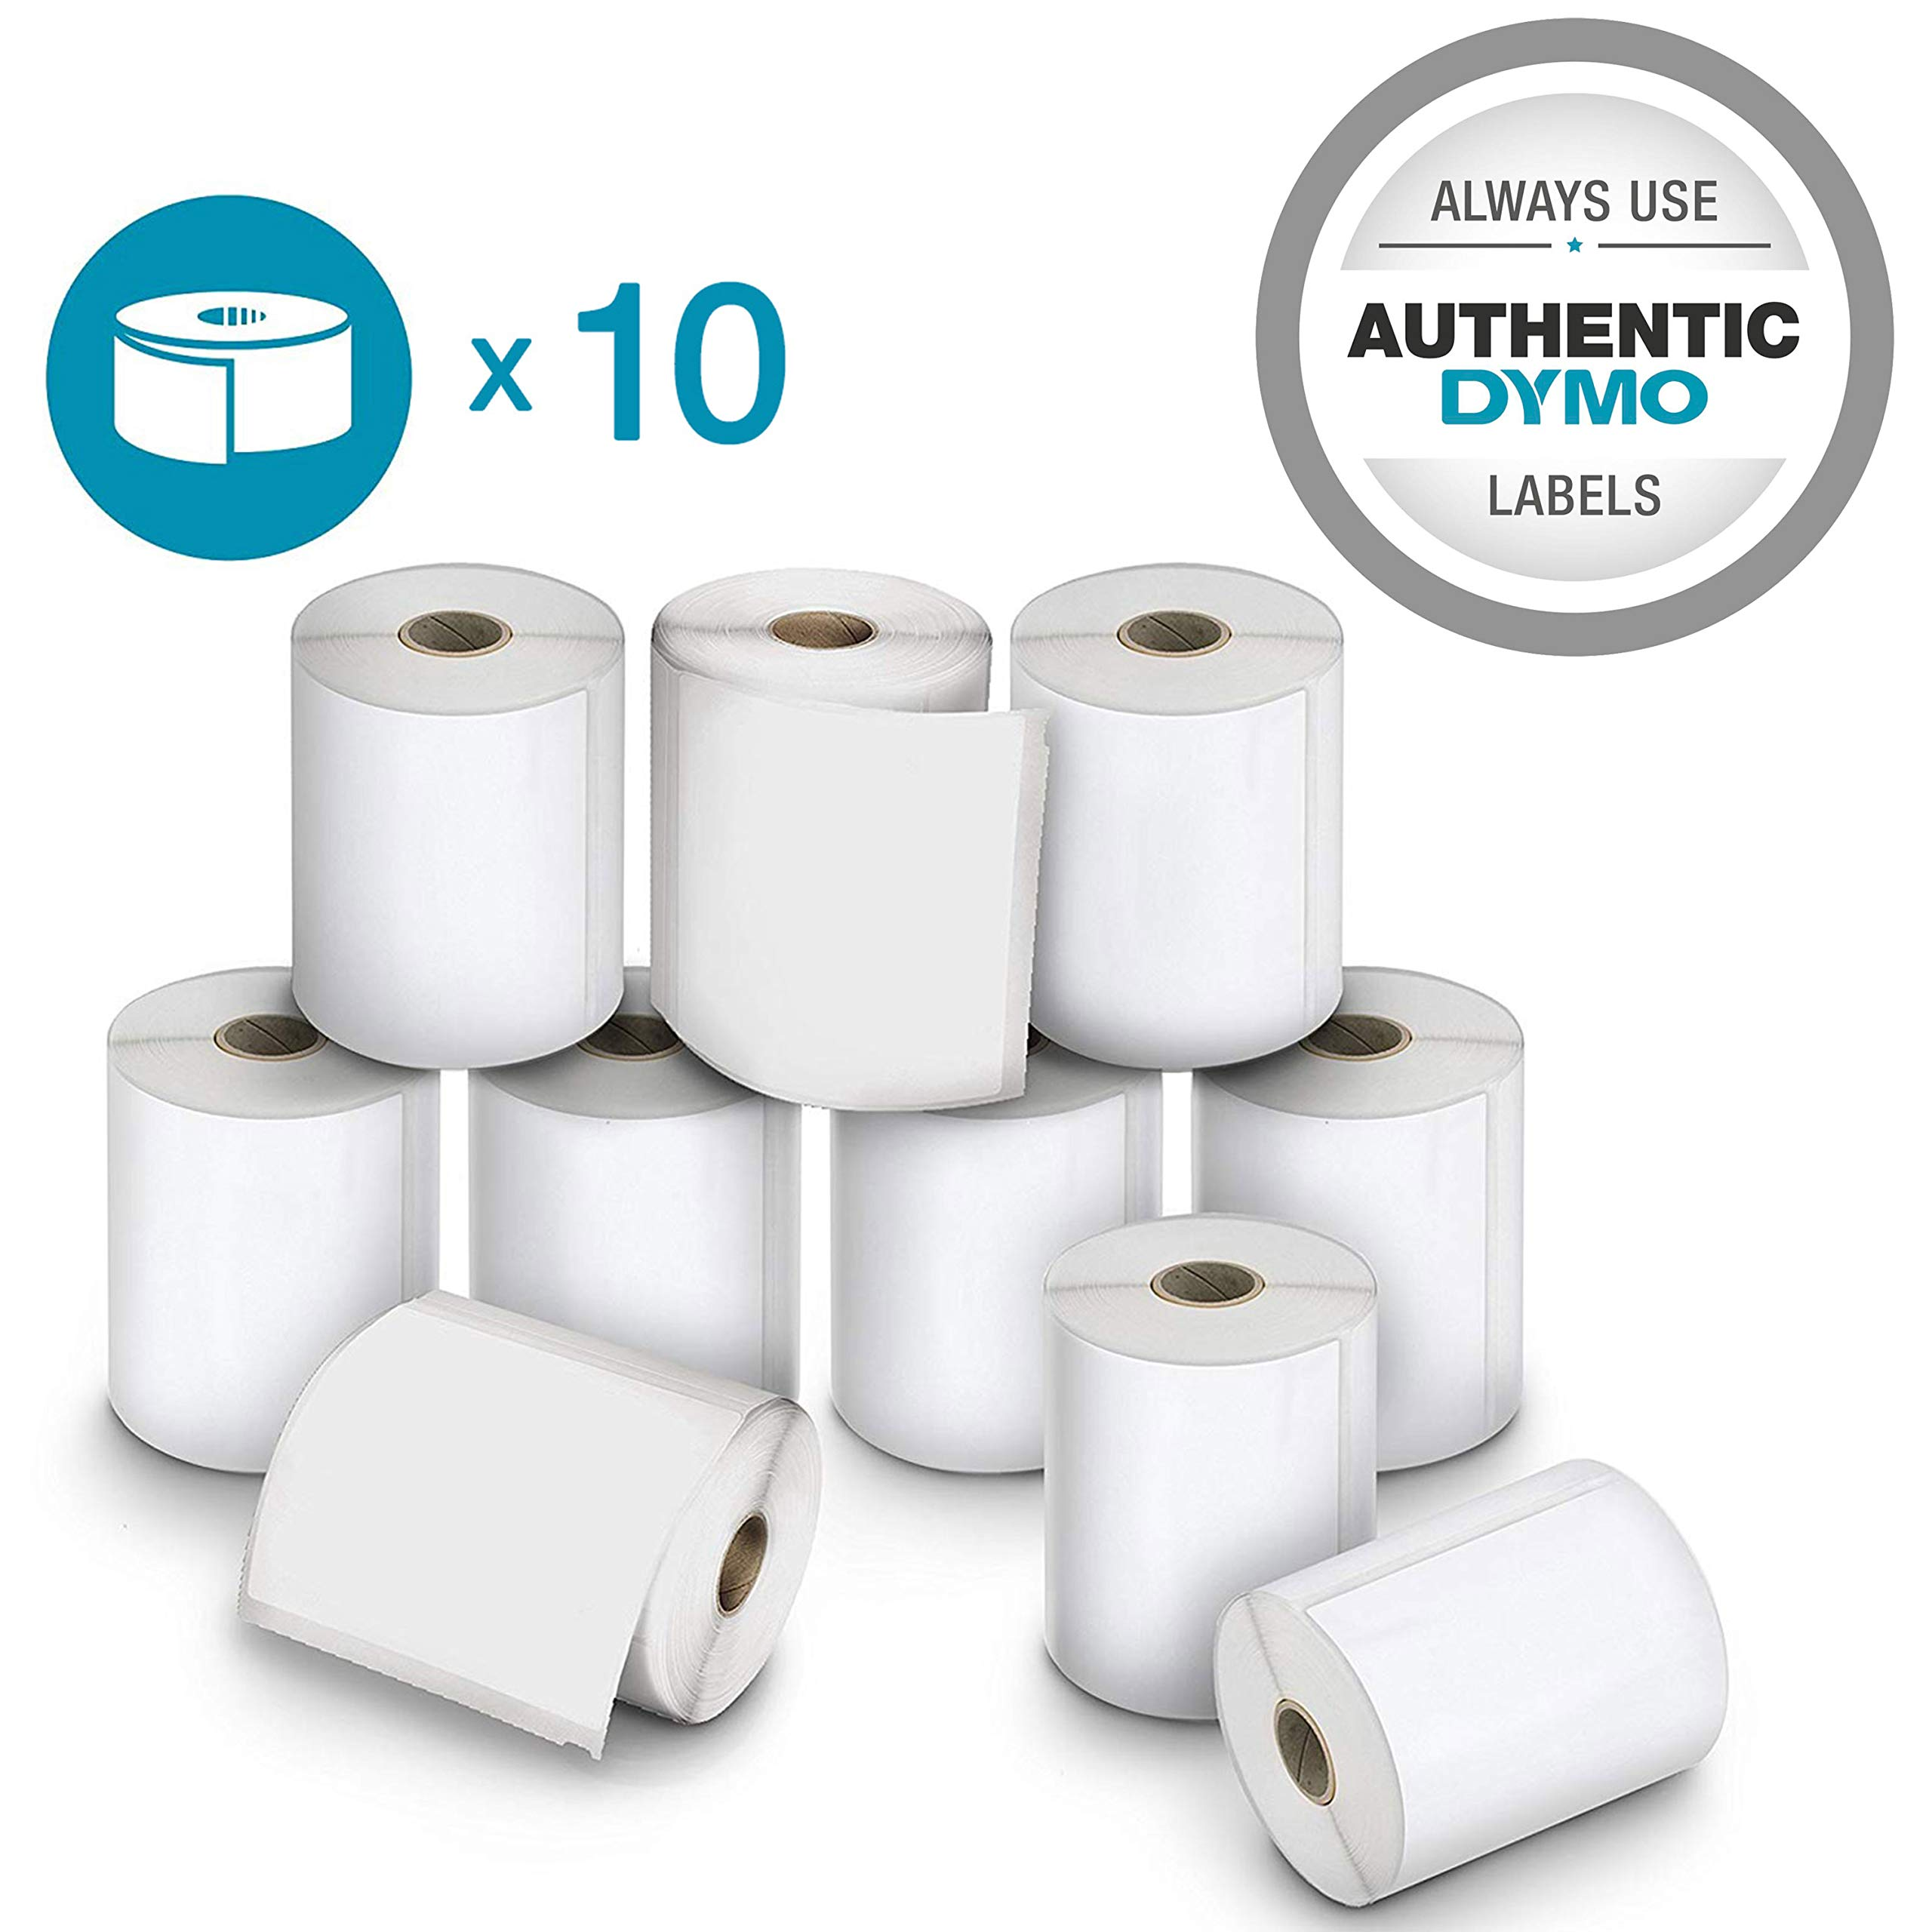 DYMO Authentic LW Extra Large Shipping Labels | Authentic DYMO Labels for LabelWriter 4XL Label Printer (4'' x 6''), 10 Roll of 220 (2200 Total)